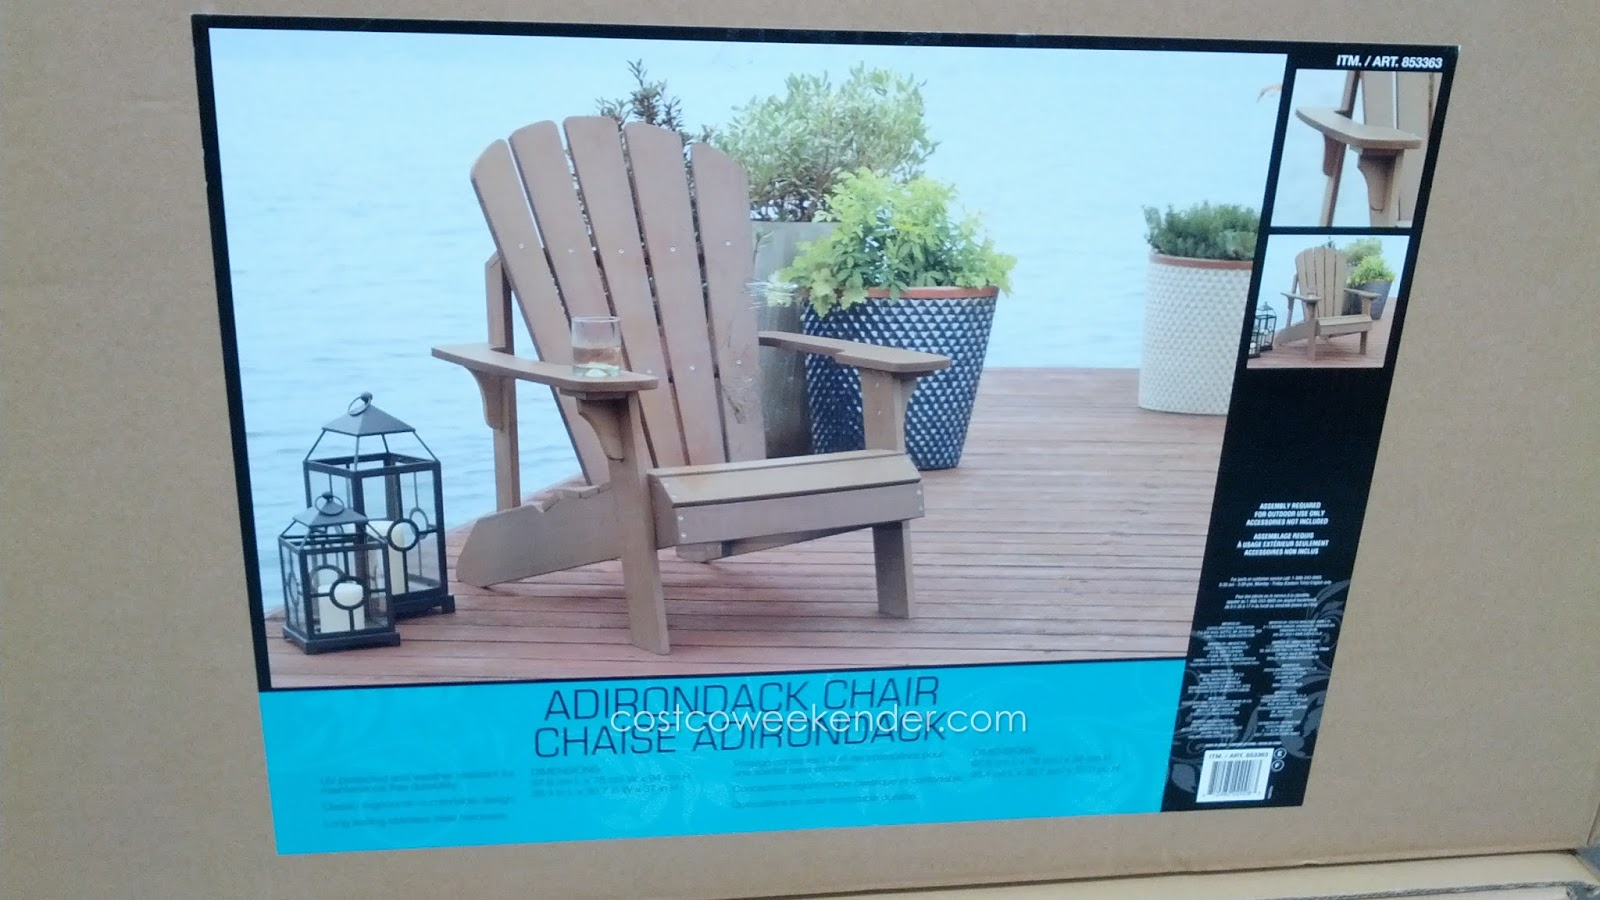 Ergonomic Chair Dimensions Wicker Outdoor Dining Chairs Faux Wood Adirondack | Costco Weekender